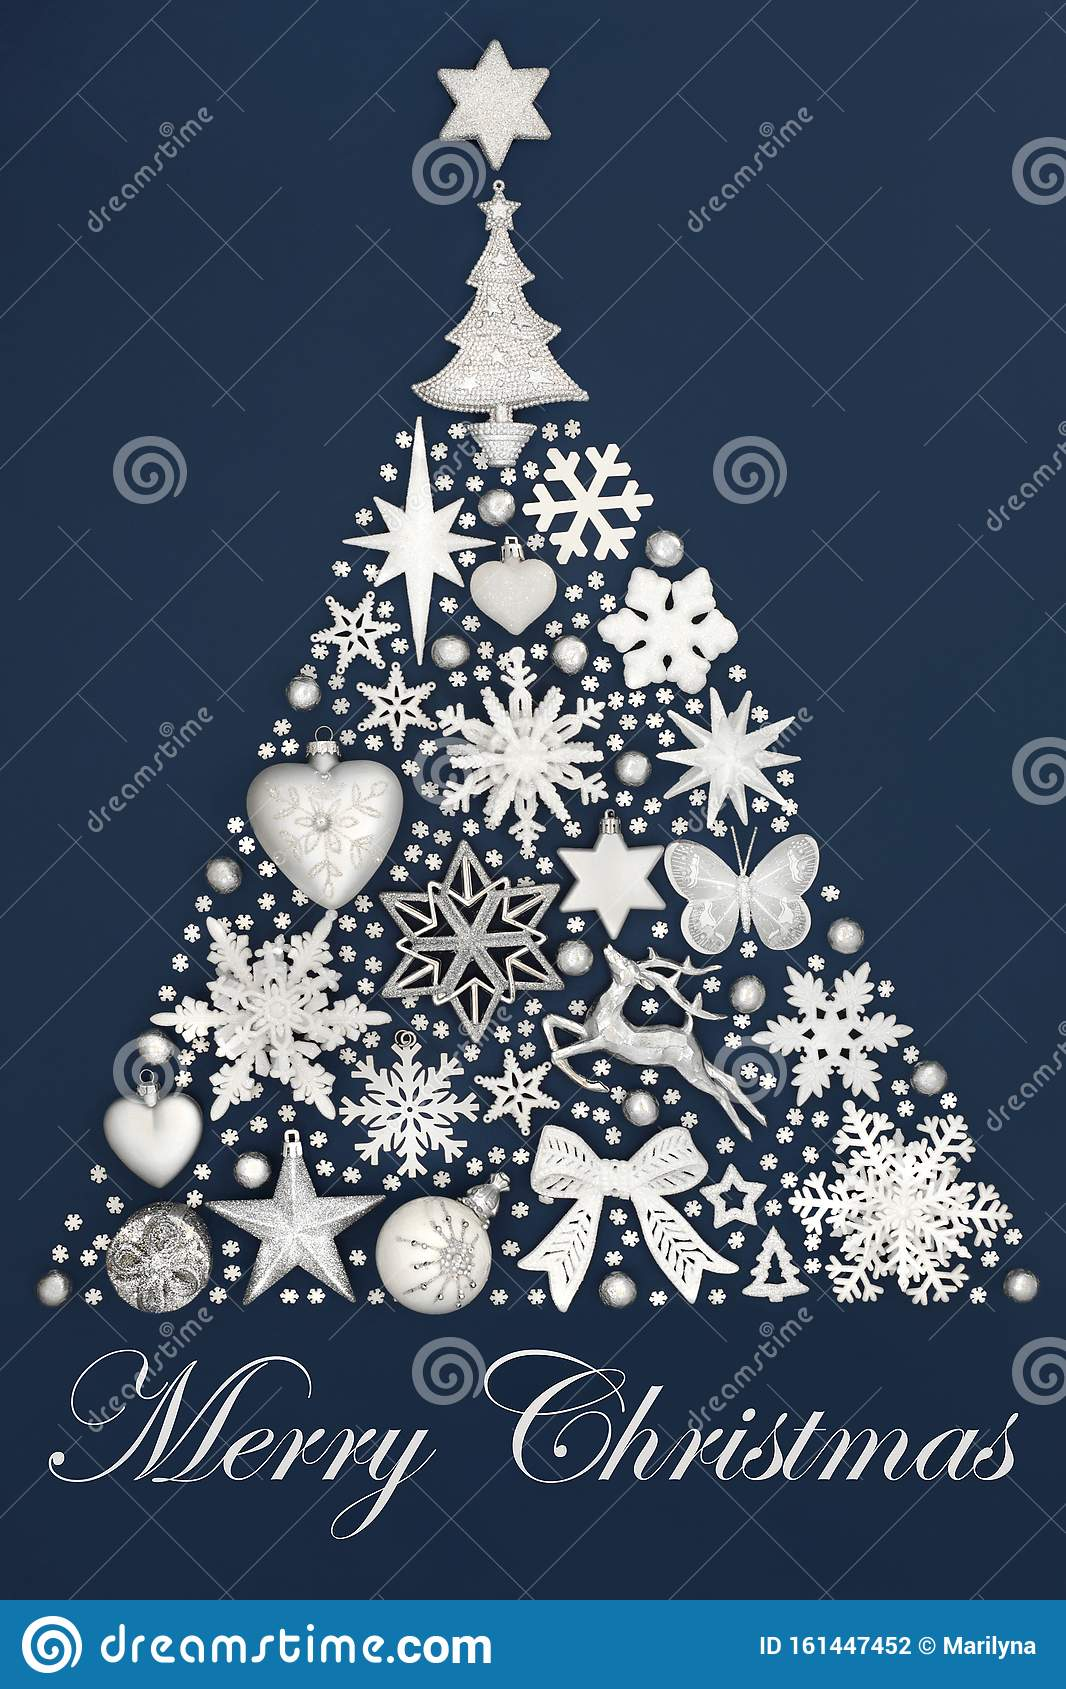 Merry Christmas Tree Decoration Stock Photo Image Of Holiday Frosted 161447452